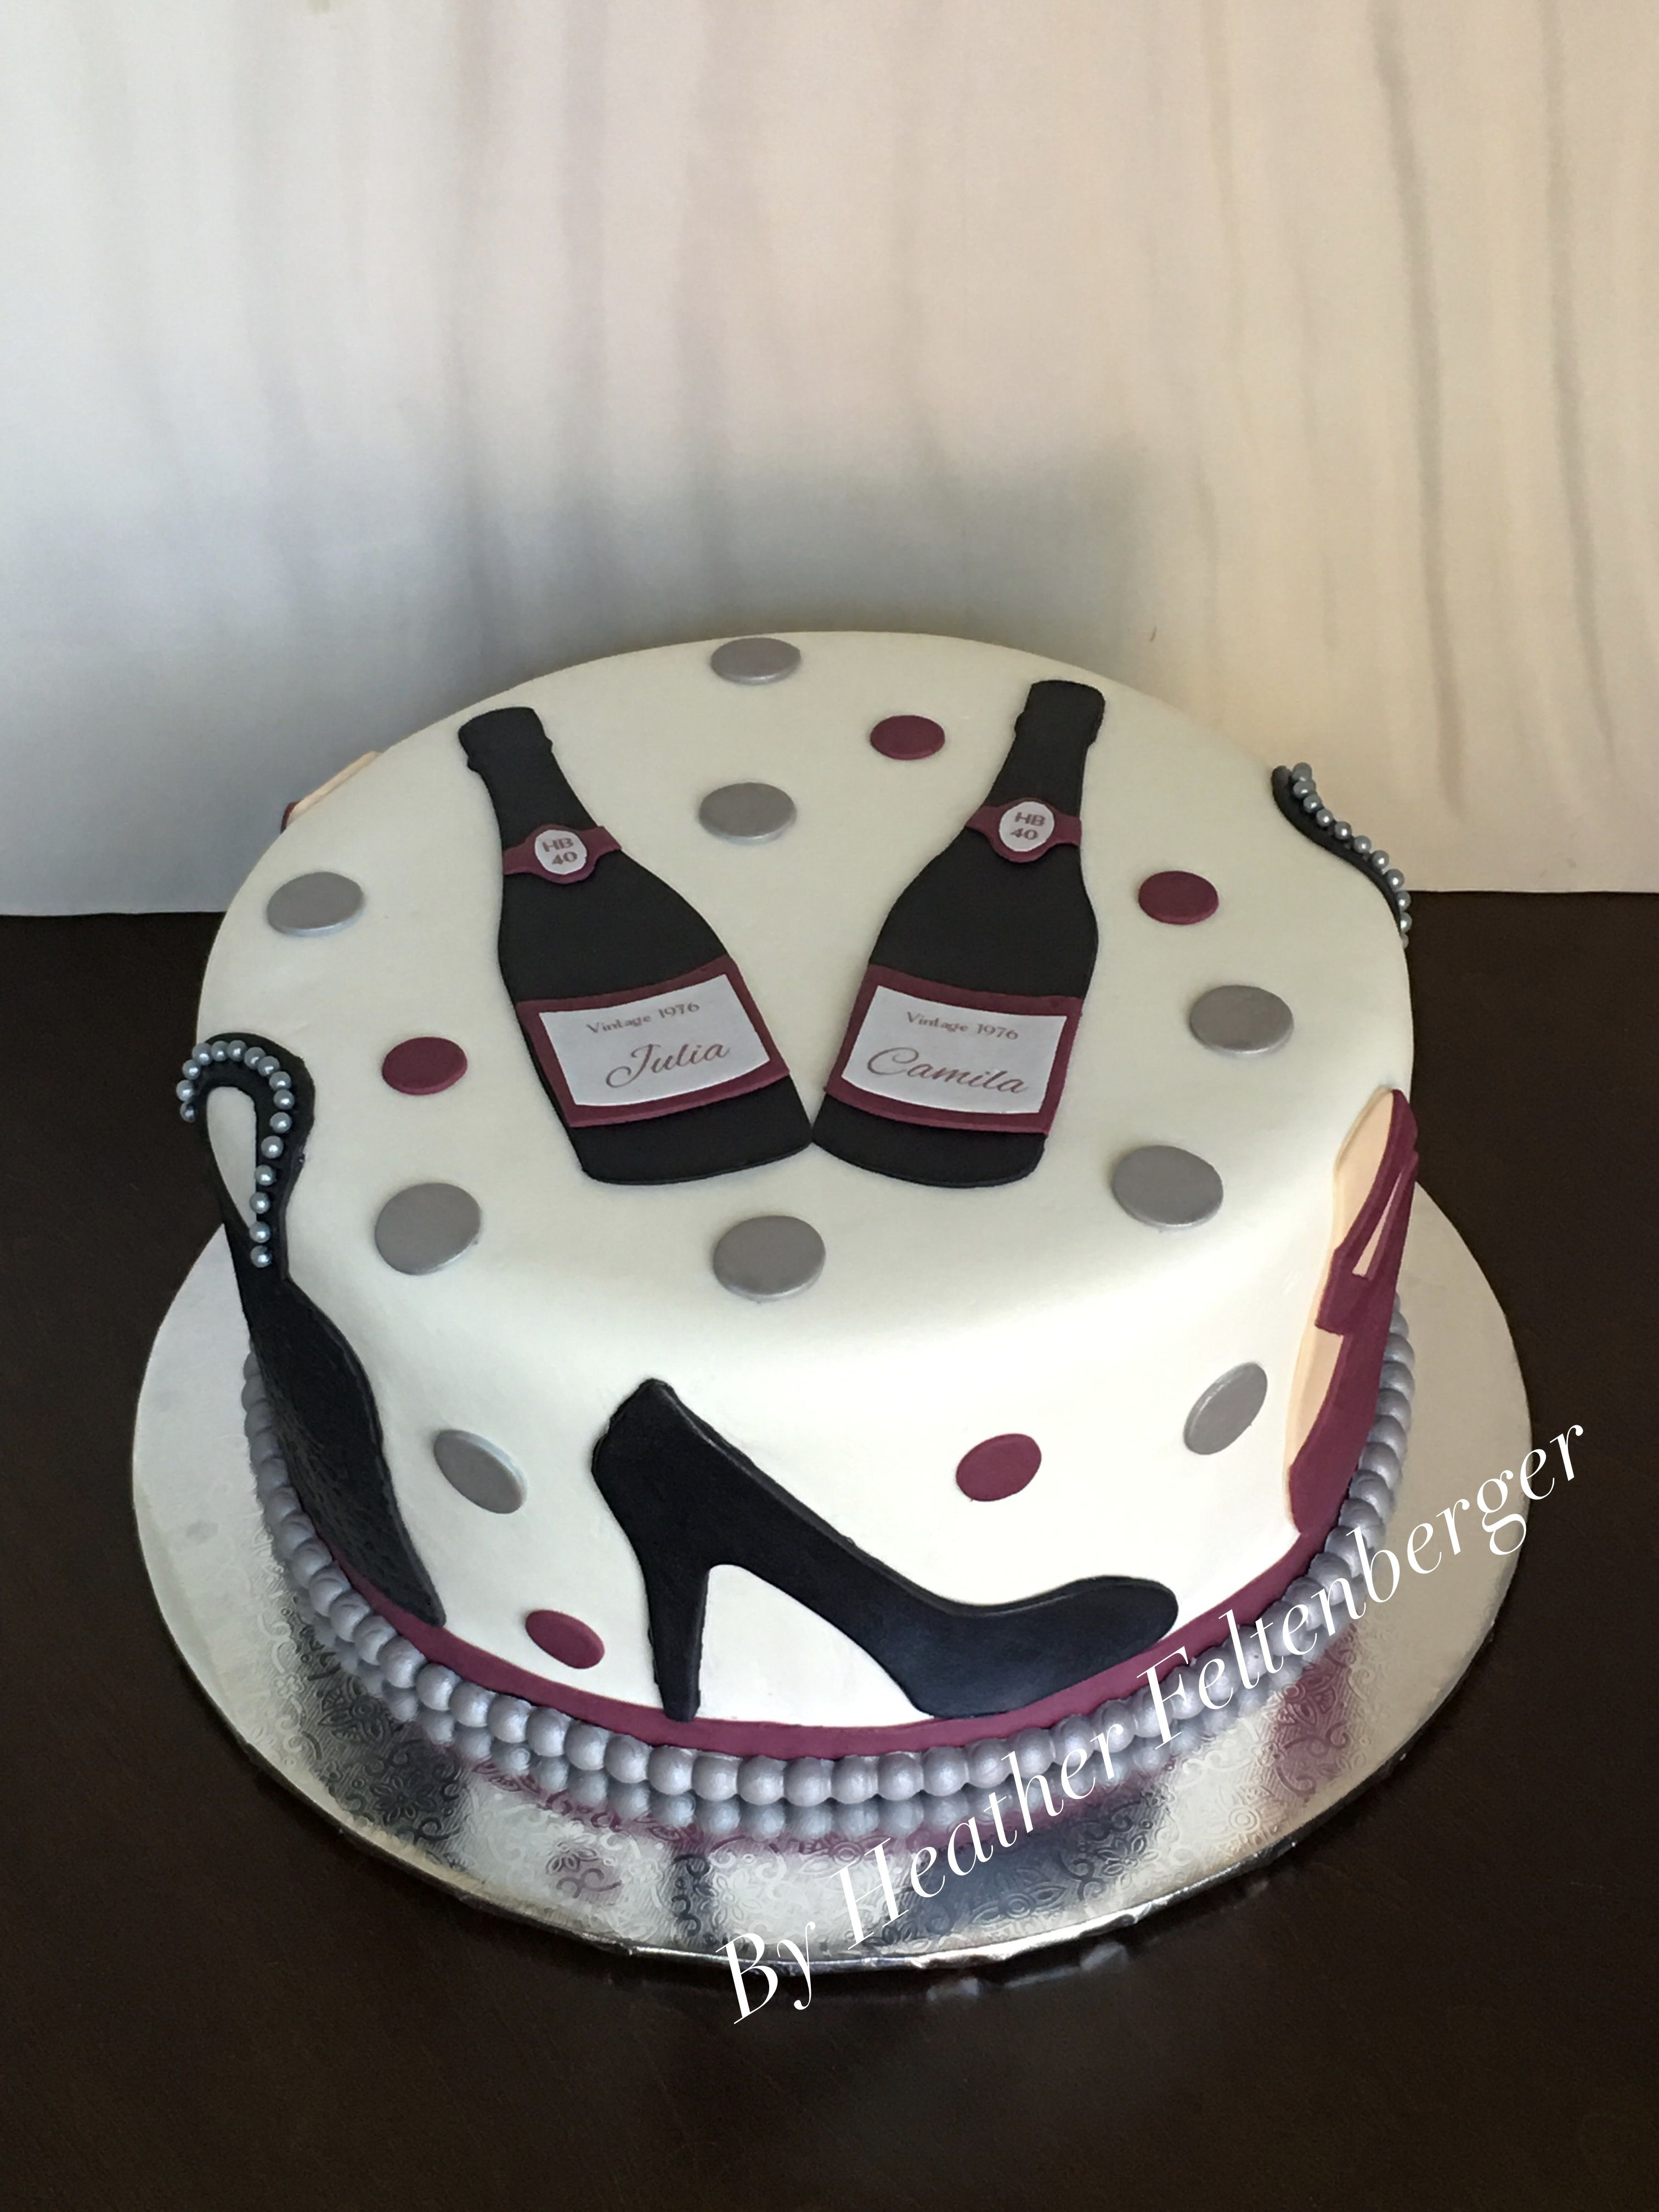 Wine, fashion, high heels, purses, ballet slipppers, adult